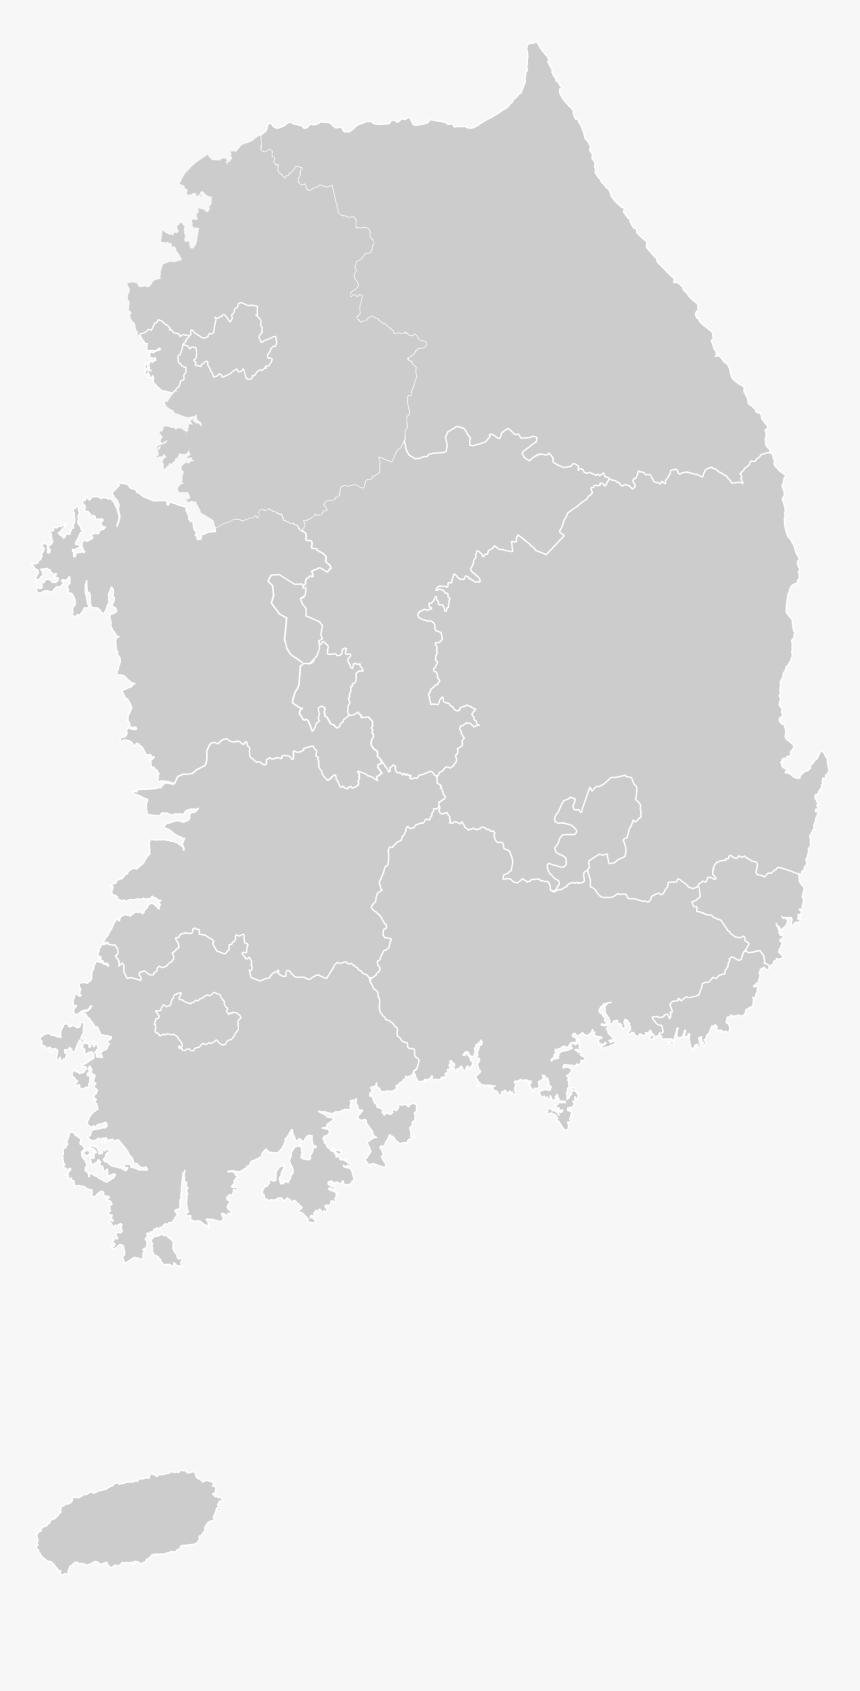 Picture of: South Korea Map Outline Png Blank South Korea Map Transparent Png Kindpng